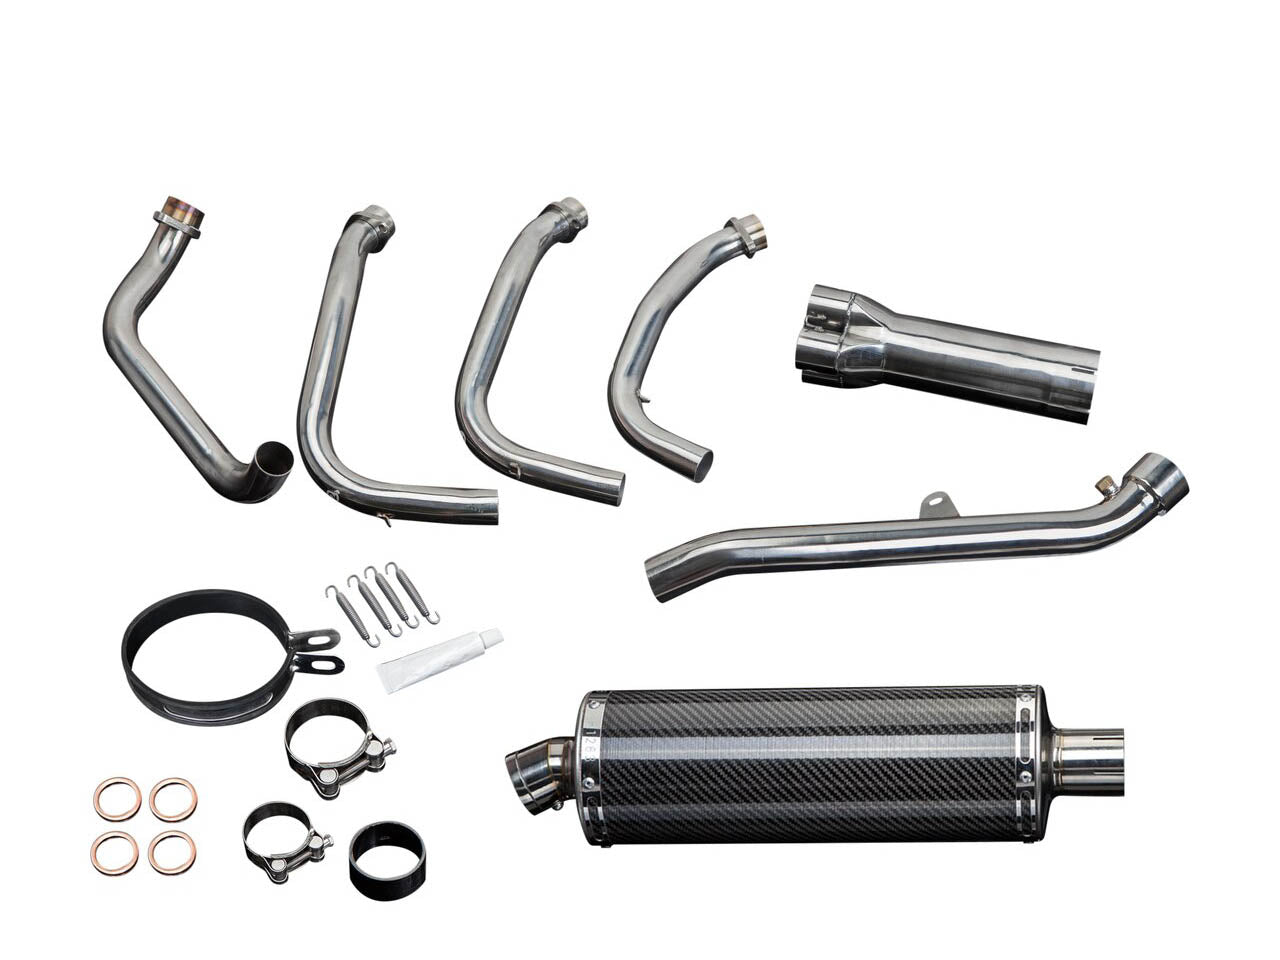 "DELKEVIC Honda CBR1100XX Blackbird Full Exhaust System 4-1 with Stubby 14"" Carbon Silencer"